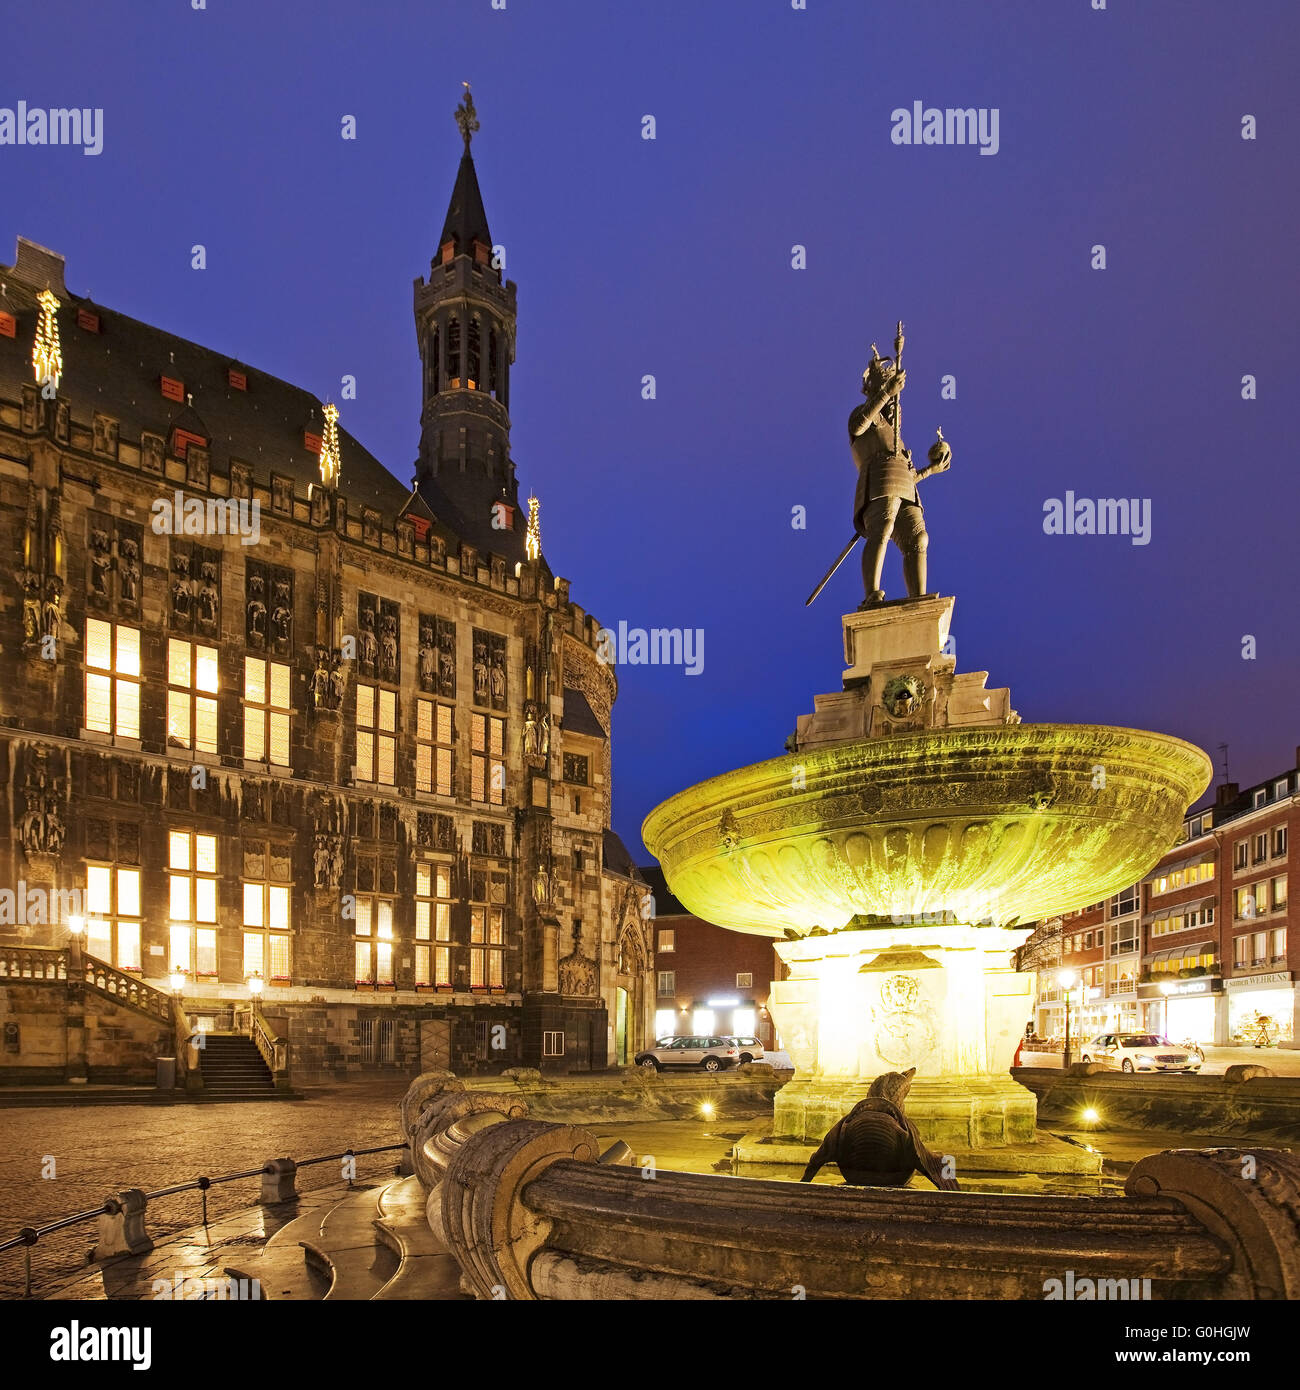 Charlemagne fountain in front of the town hall in the evening, Aix-la-chapelle, Germany, Europe - Stock Image